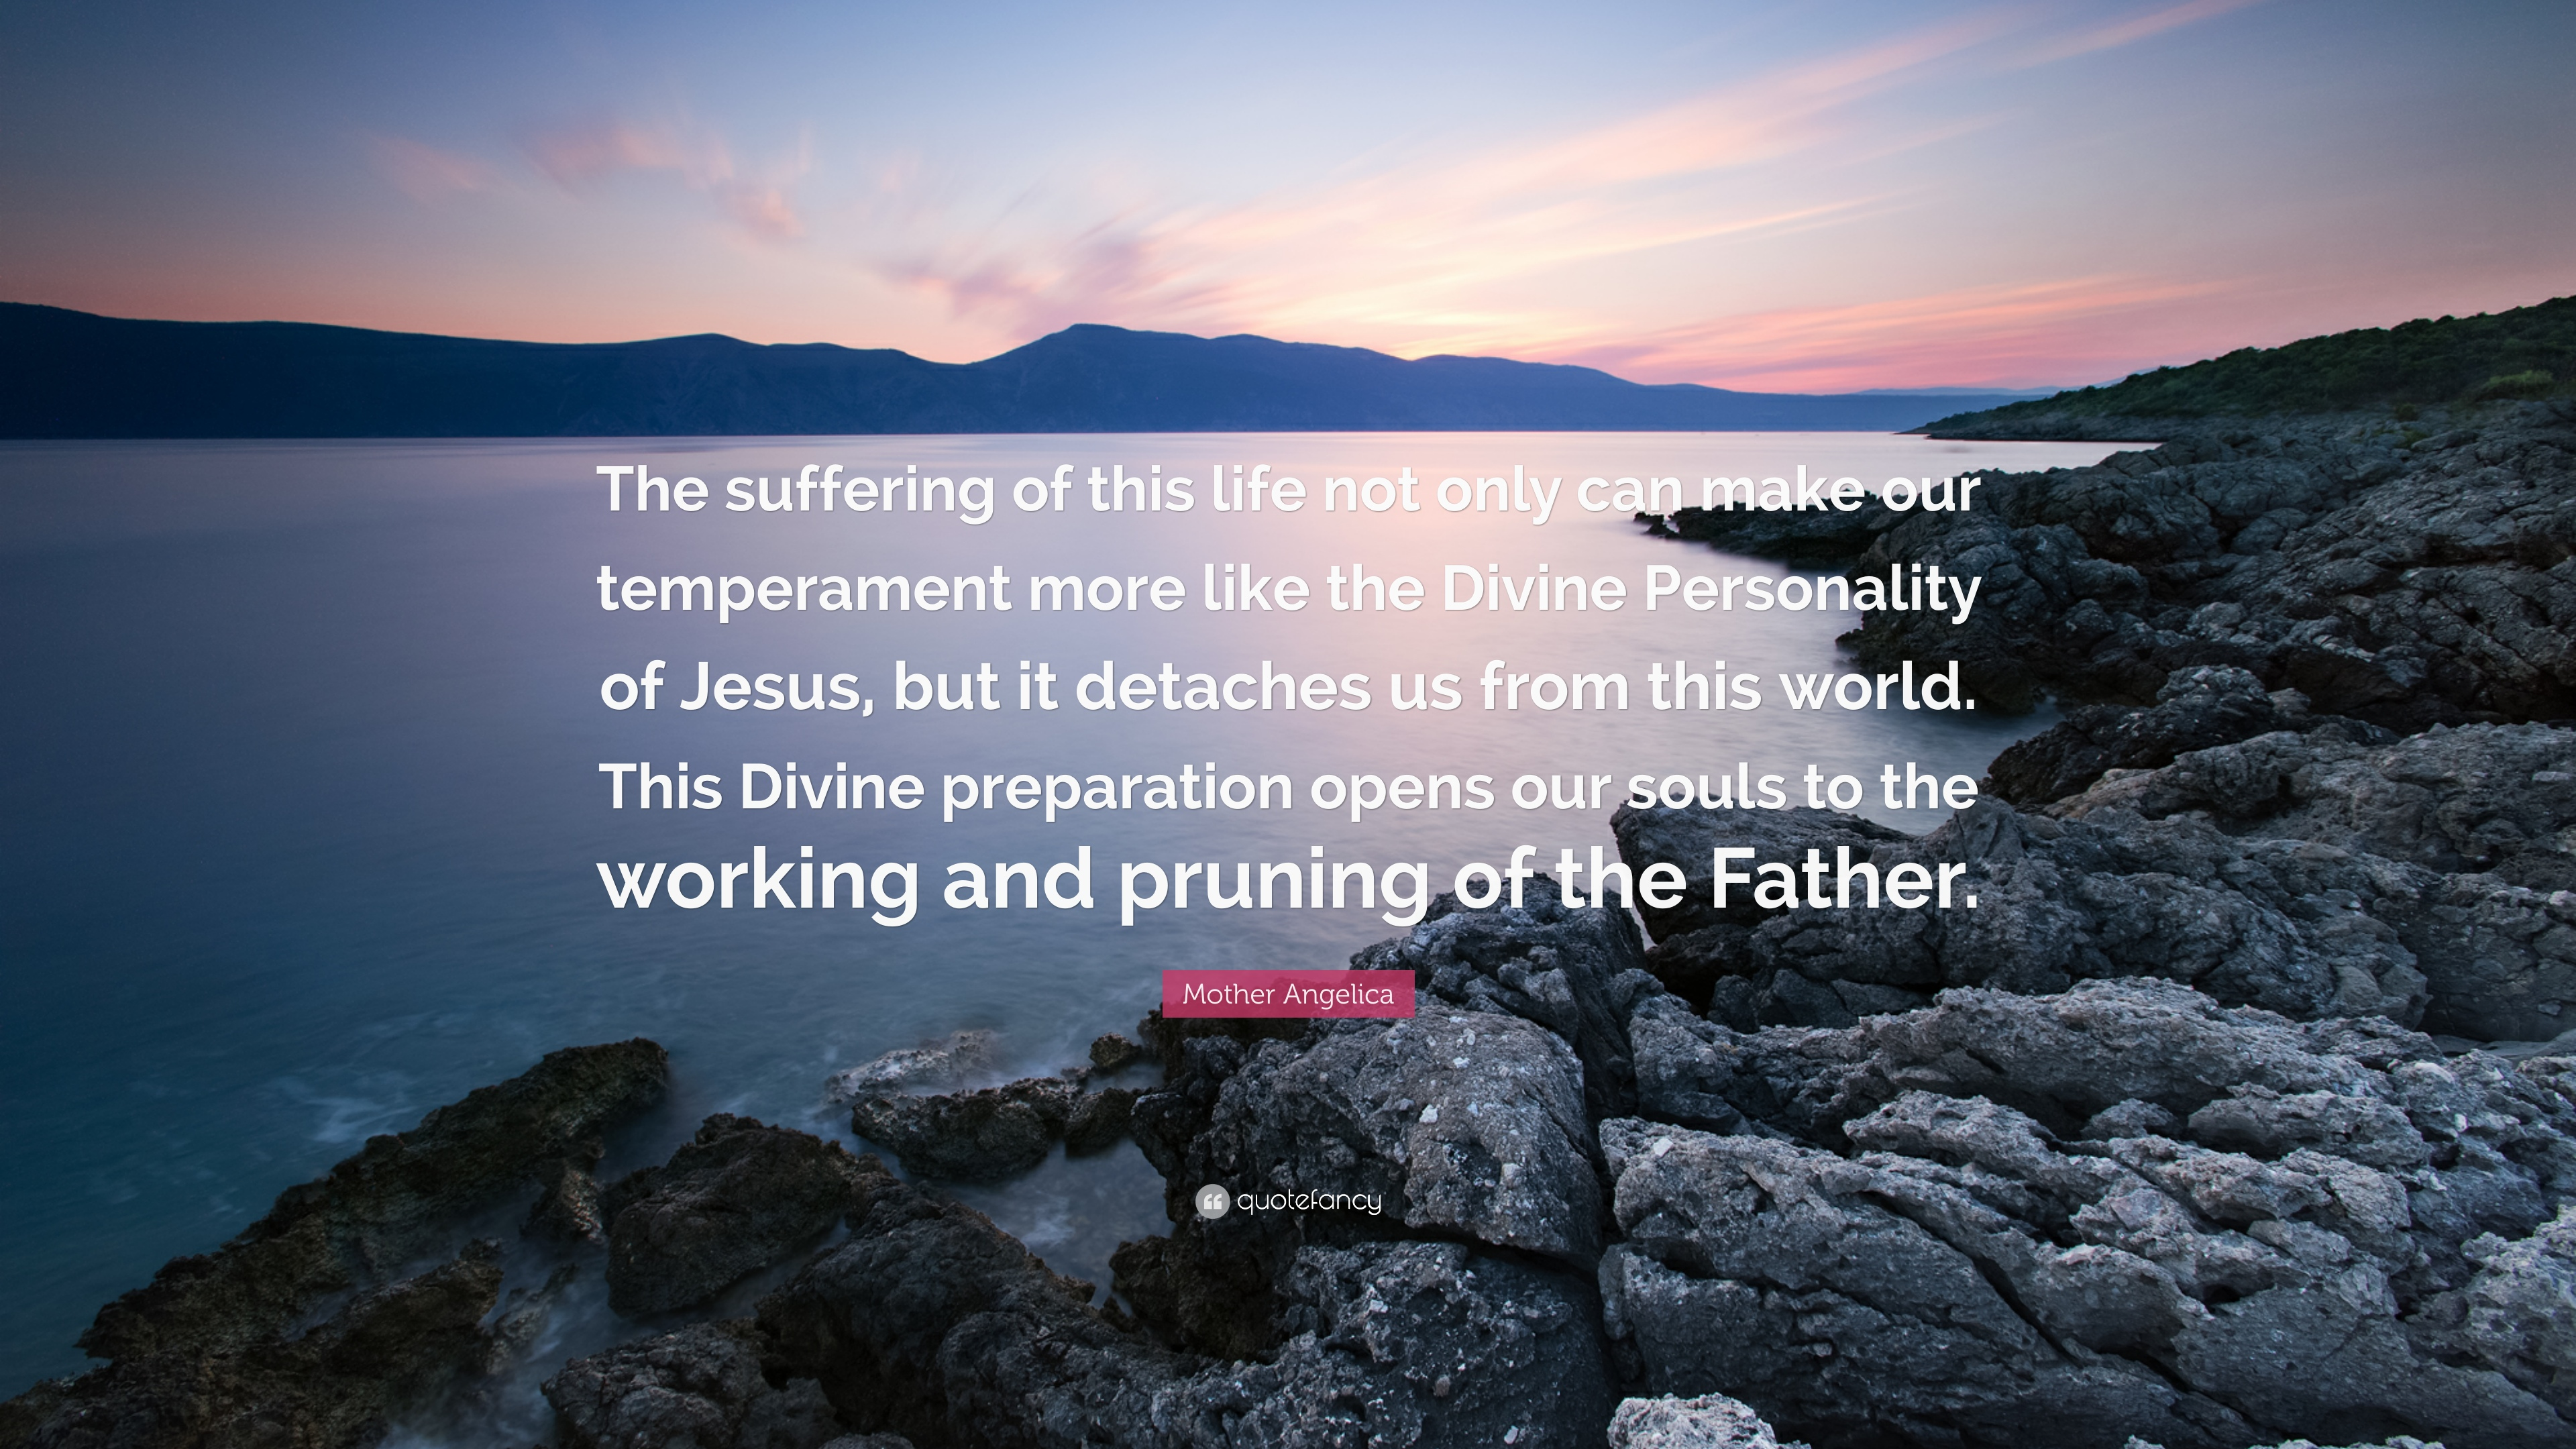 Mother Angelica Quotes | Mother Angelica Quote The Suffering Of This Life Not Only Can Make